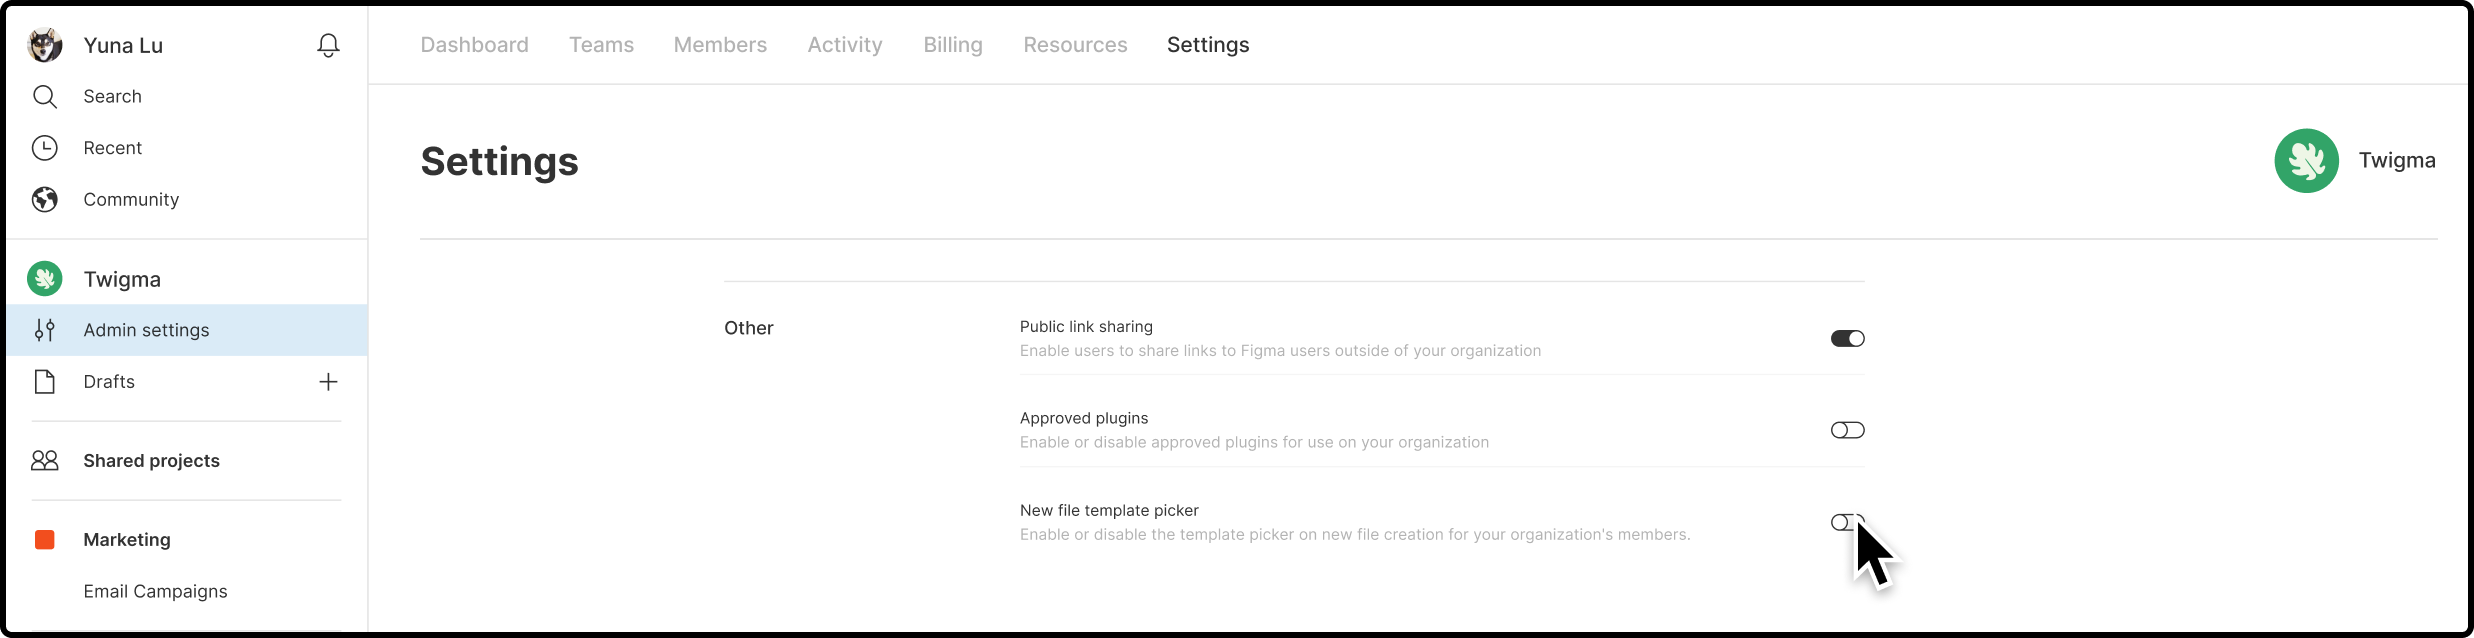 Settings tab of an organization's Admin settings with the Other section identified and the cursor hover overing the New file template picker setting